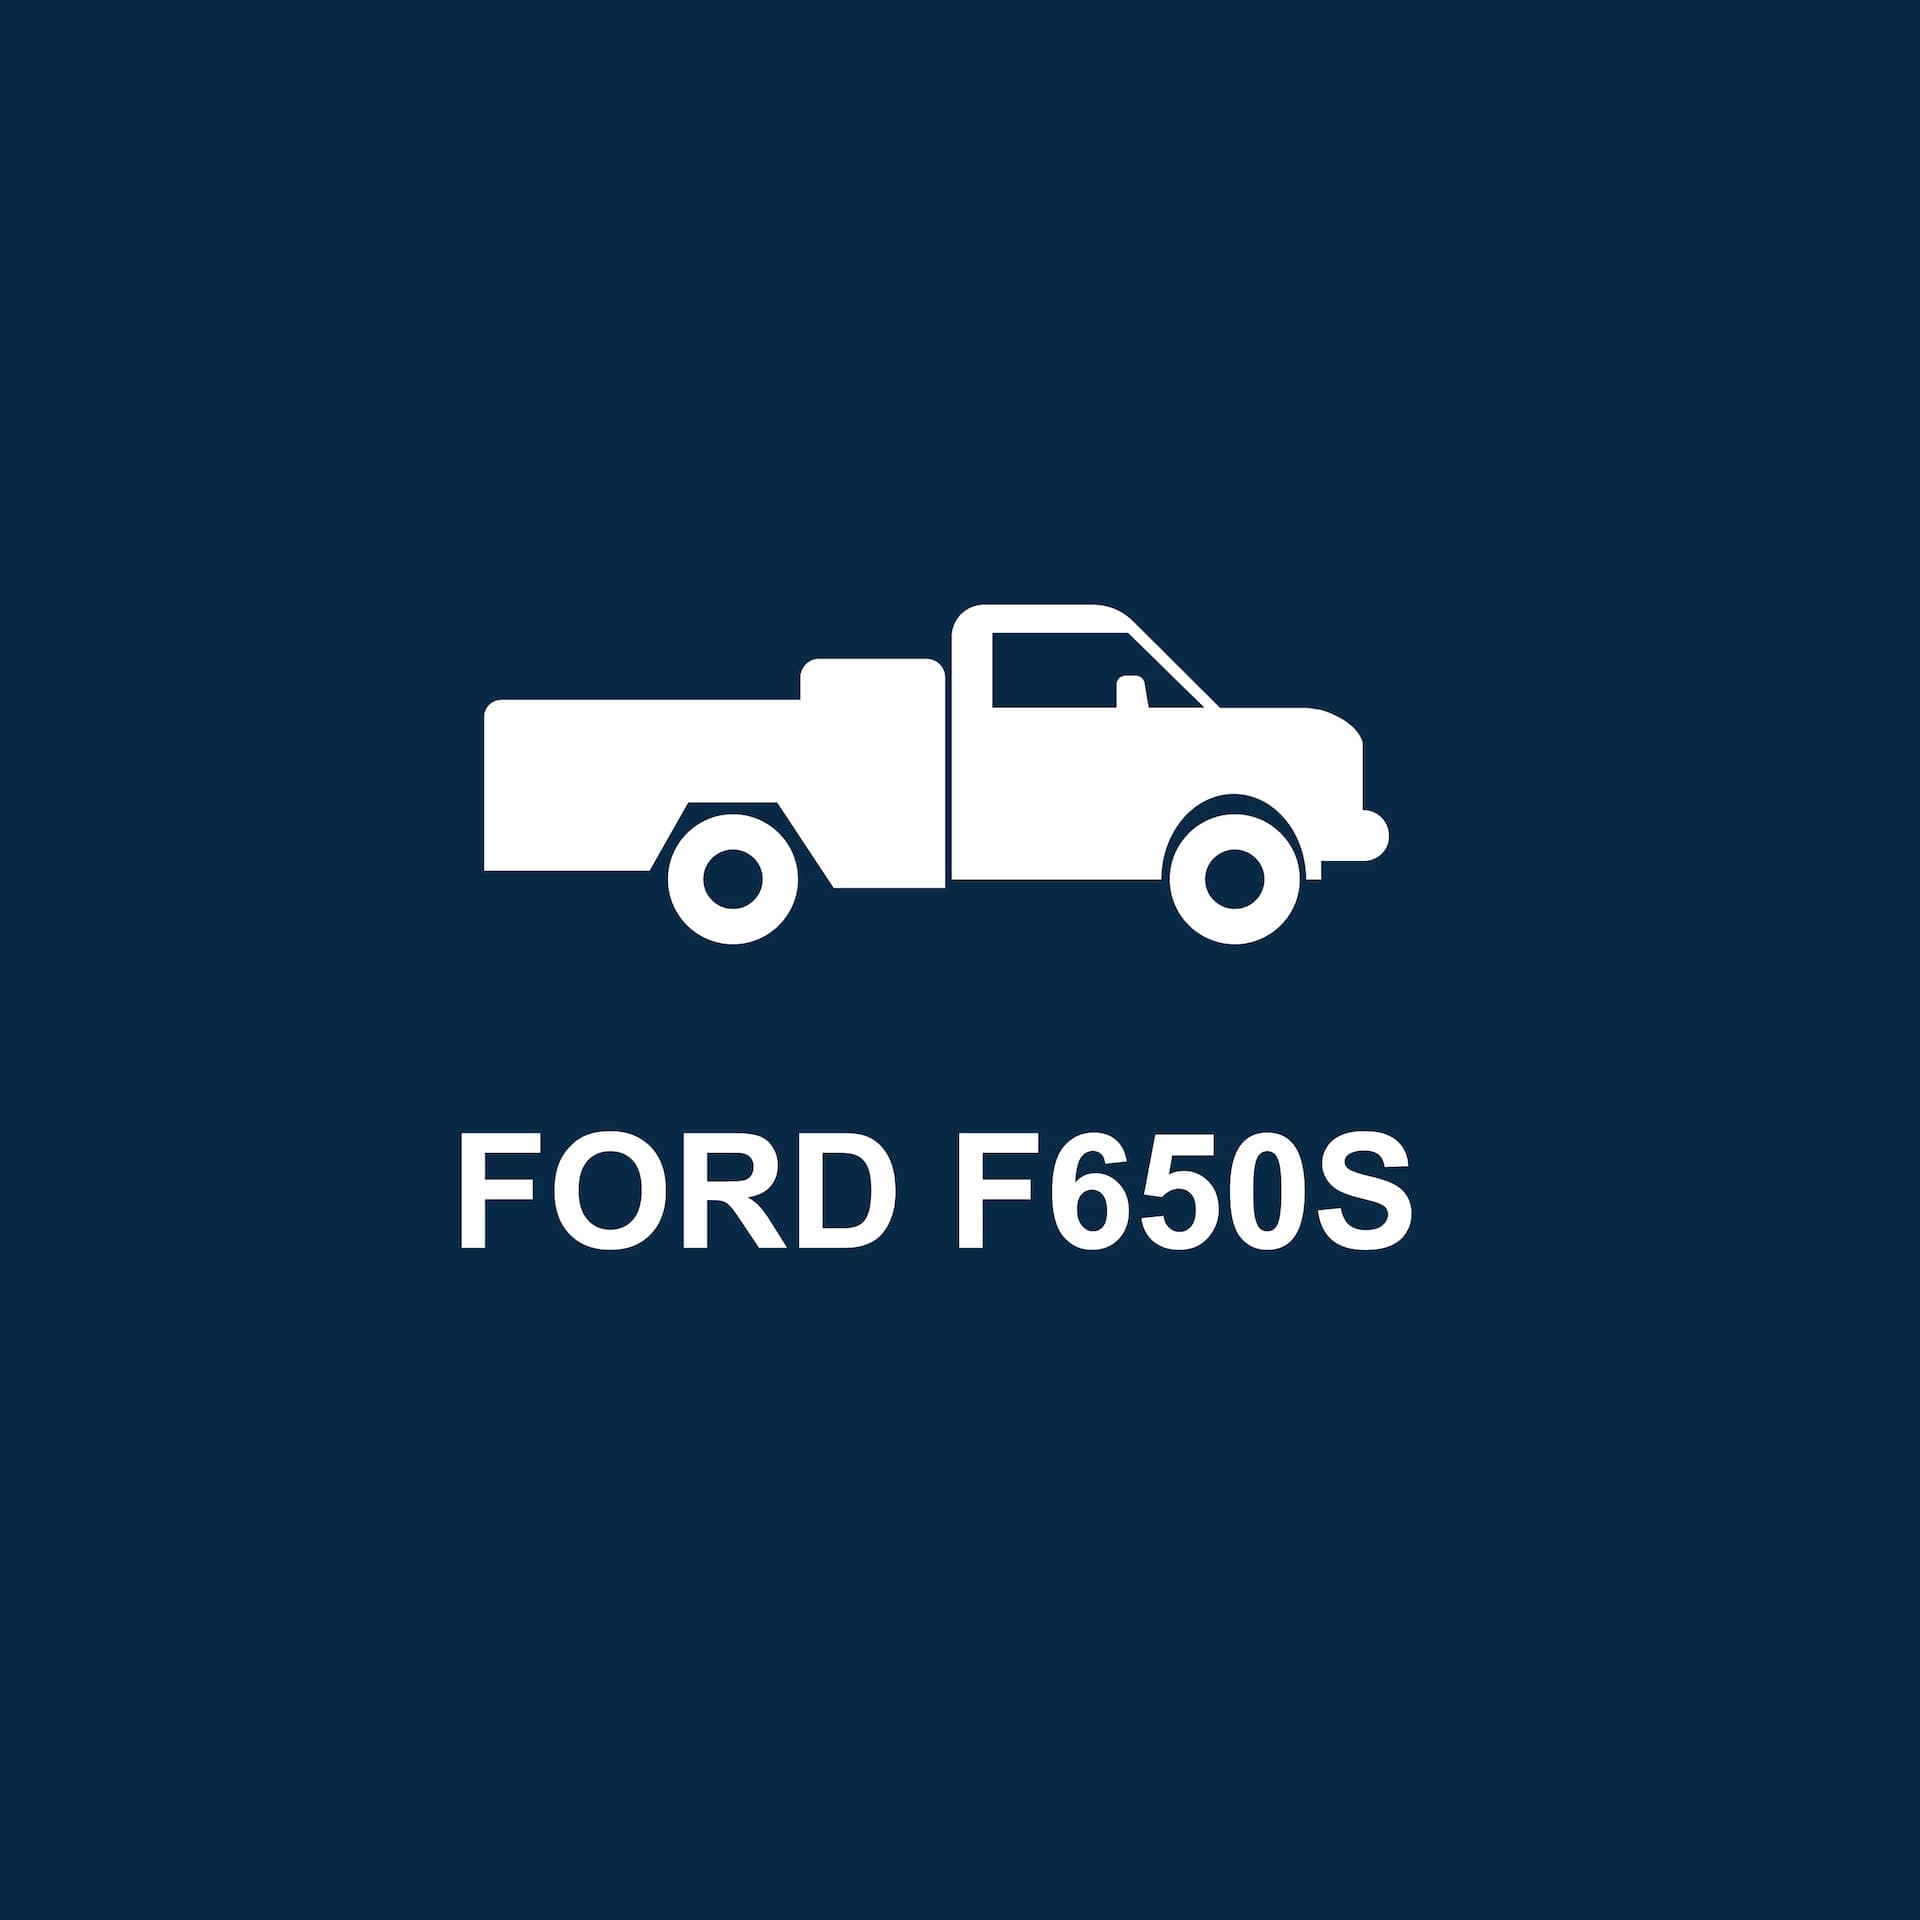 ford f650s